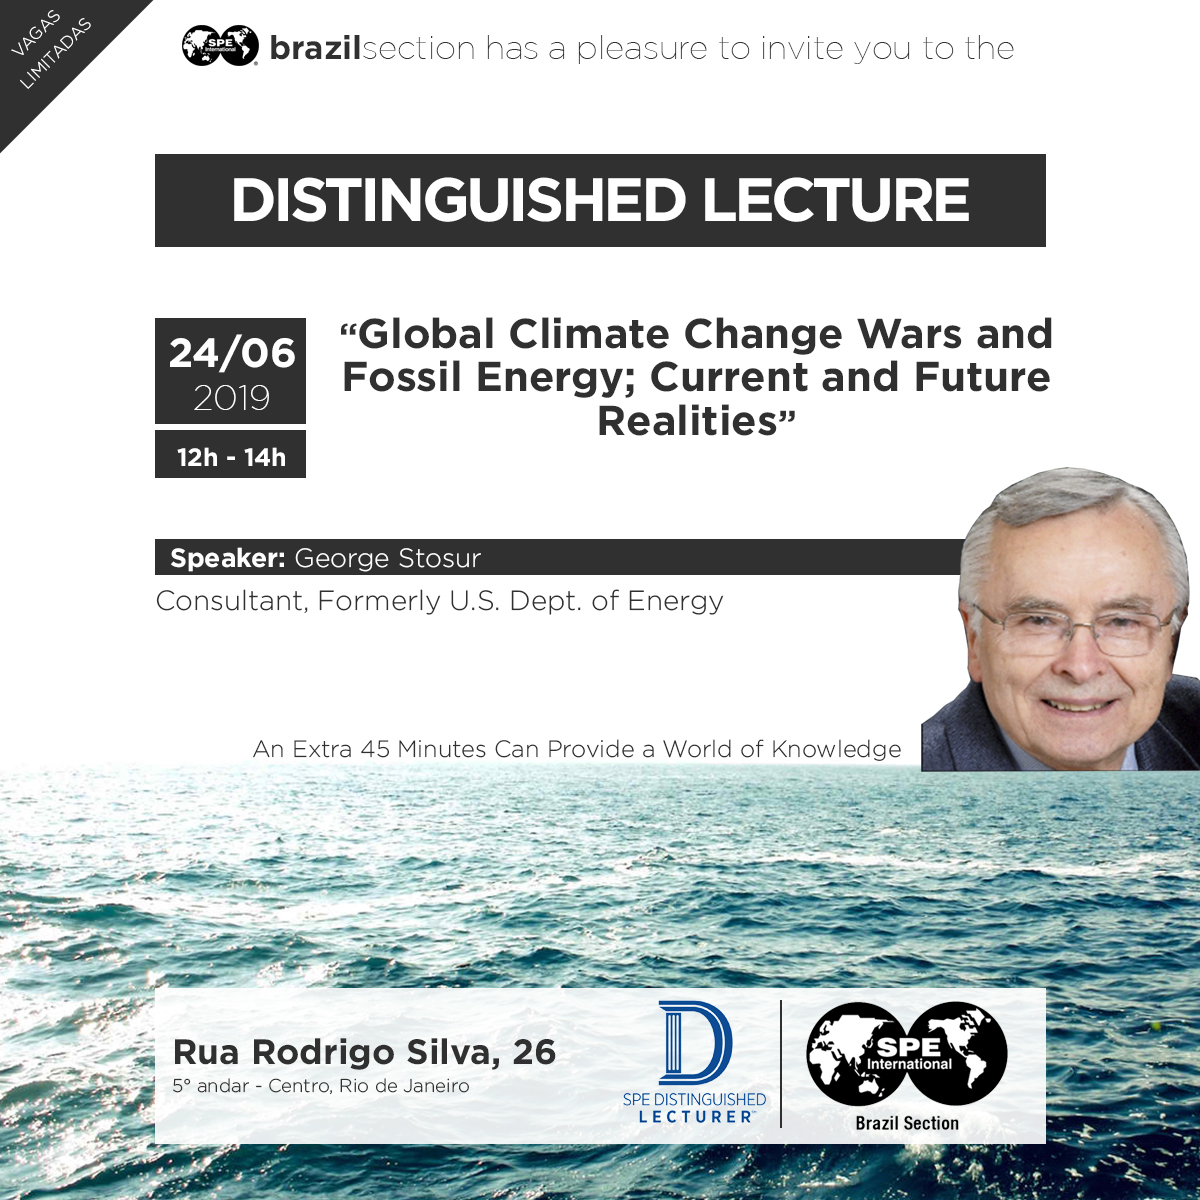 Distinguished Lecturer: Global Climate Change Wars and Fossil Energy; Current and Future Realities